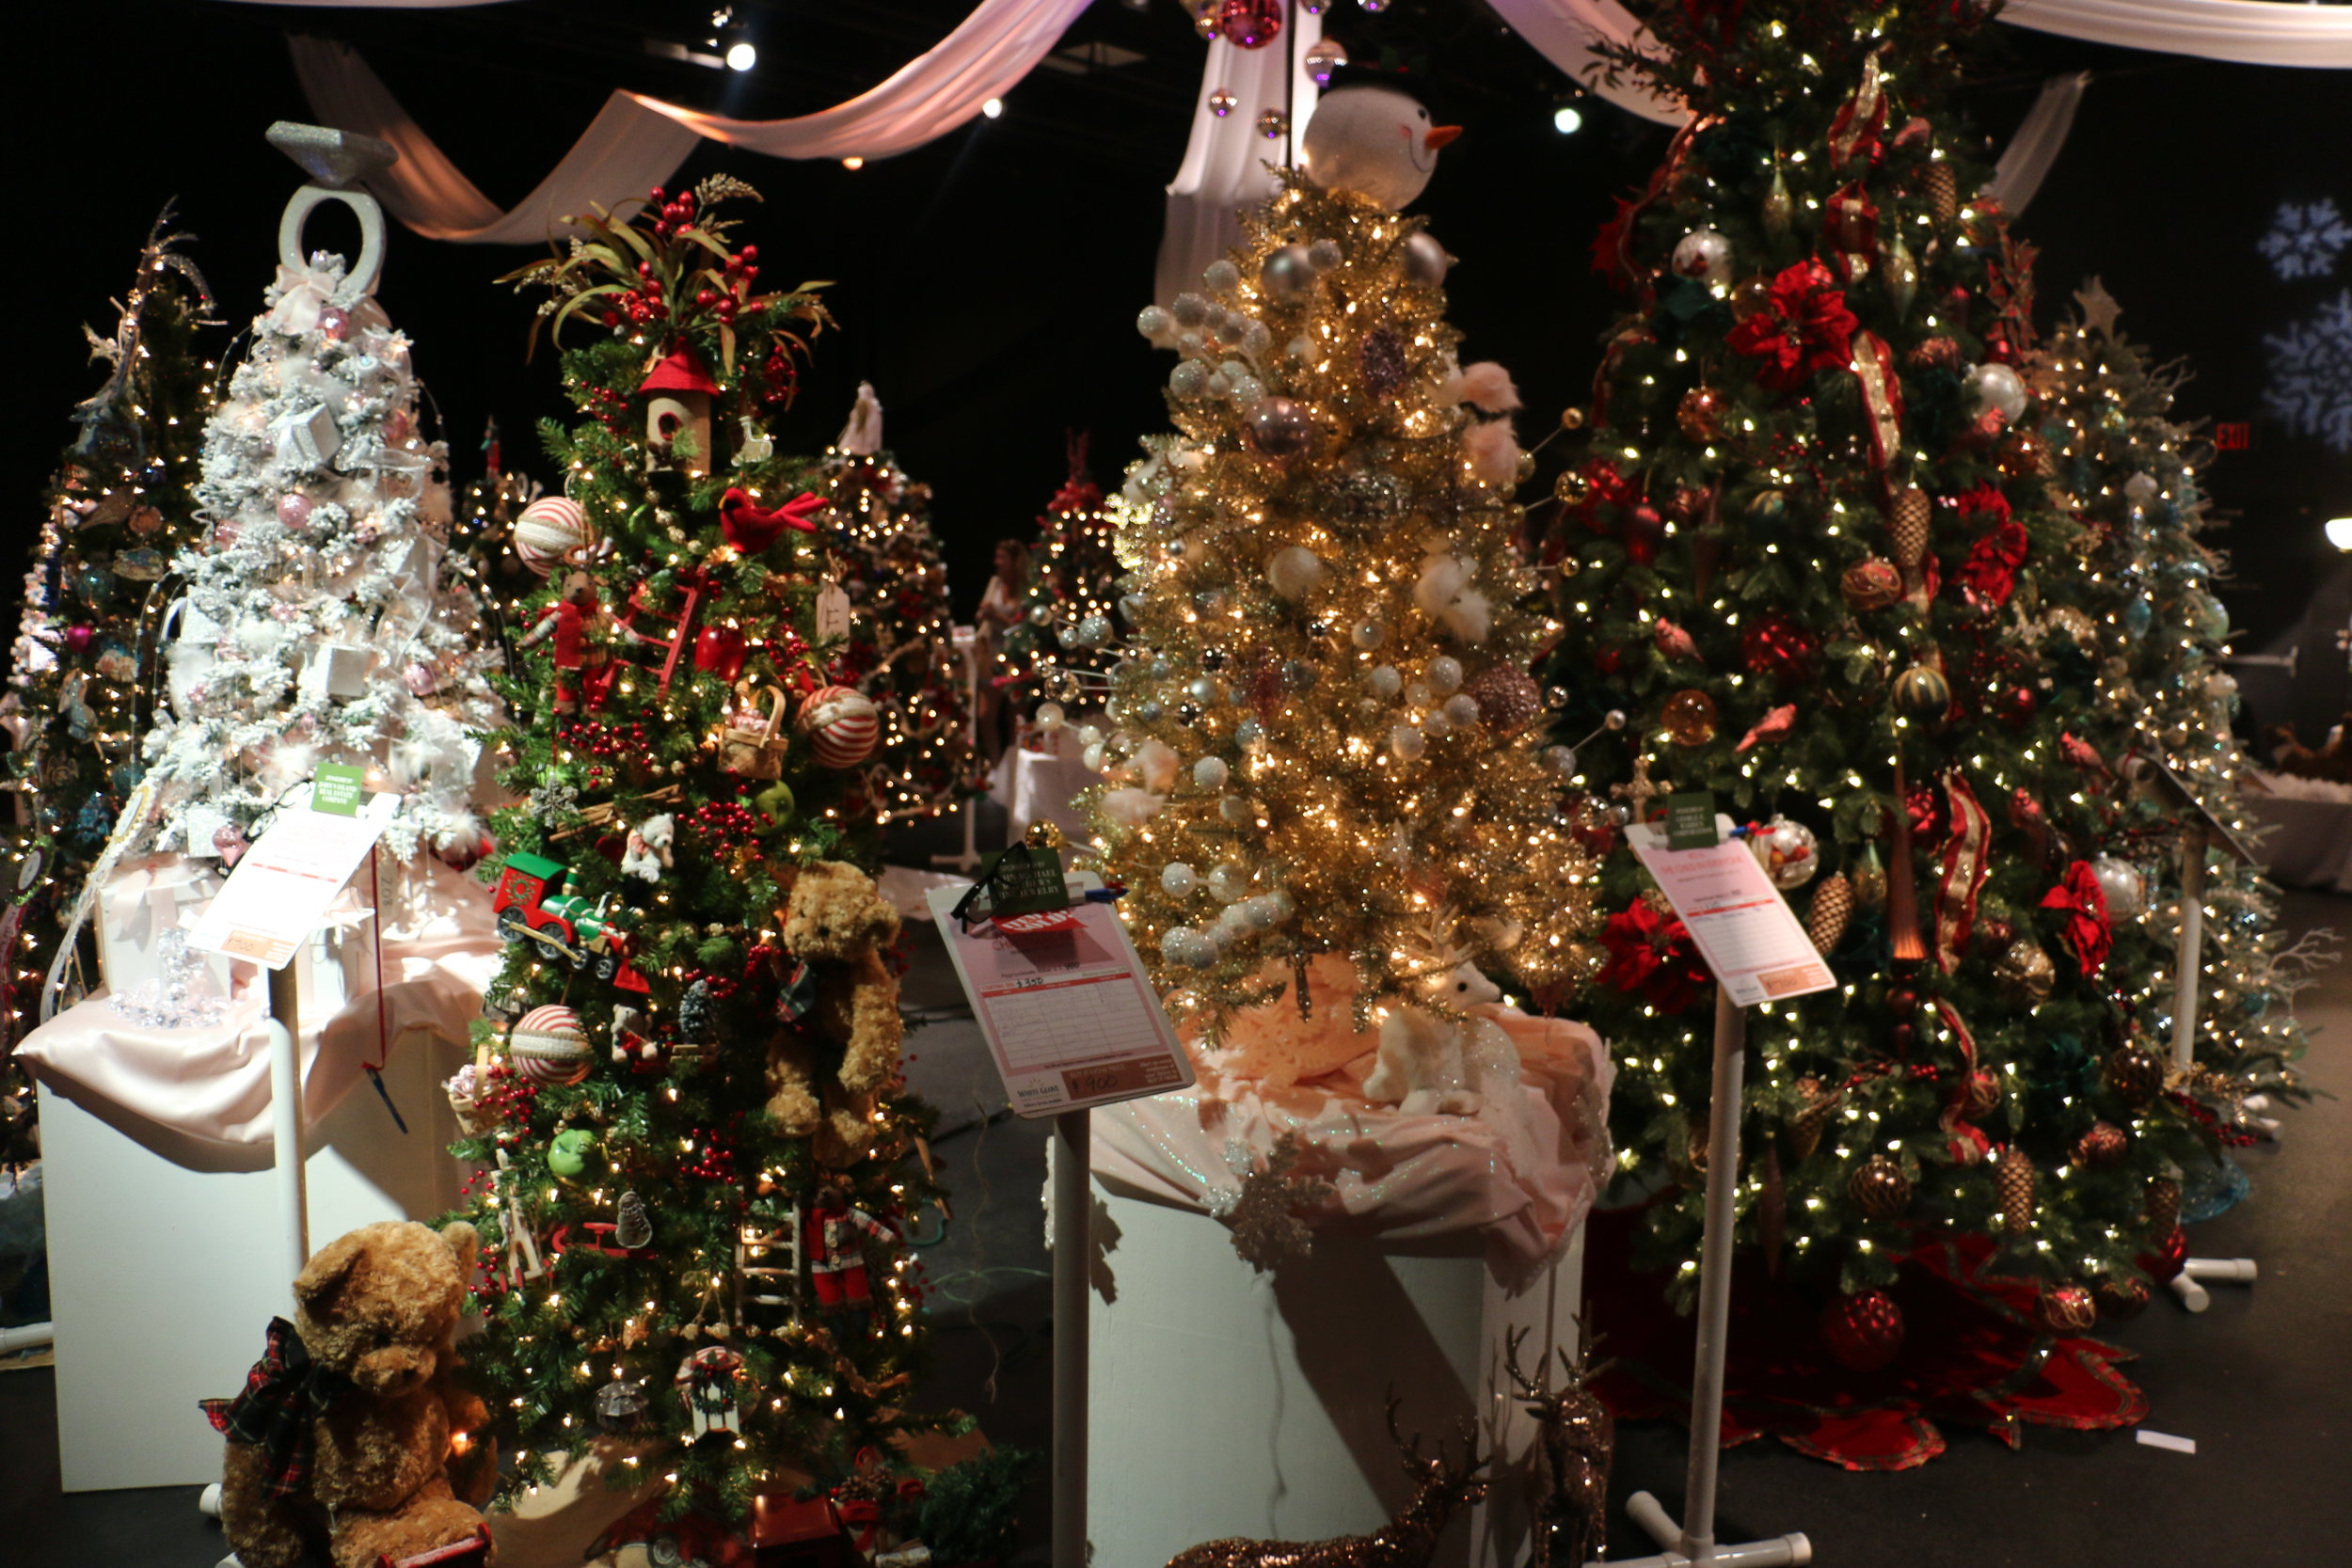 Cost Of Christmas Trees 2020 In Vero Beach Fl Festival of Trees — Riverside Theatre